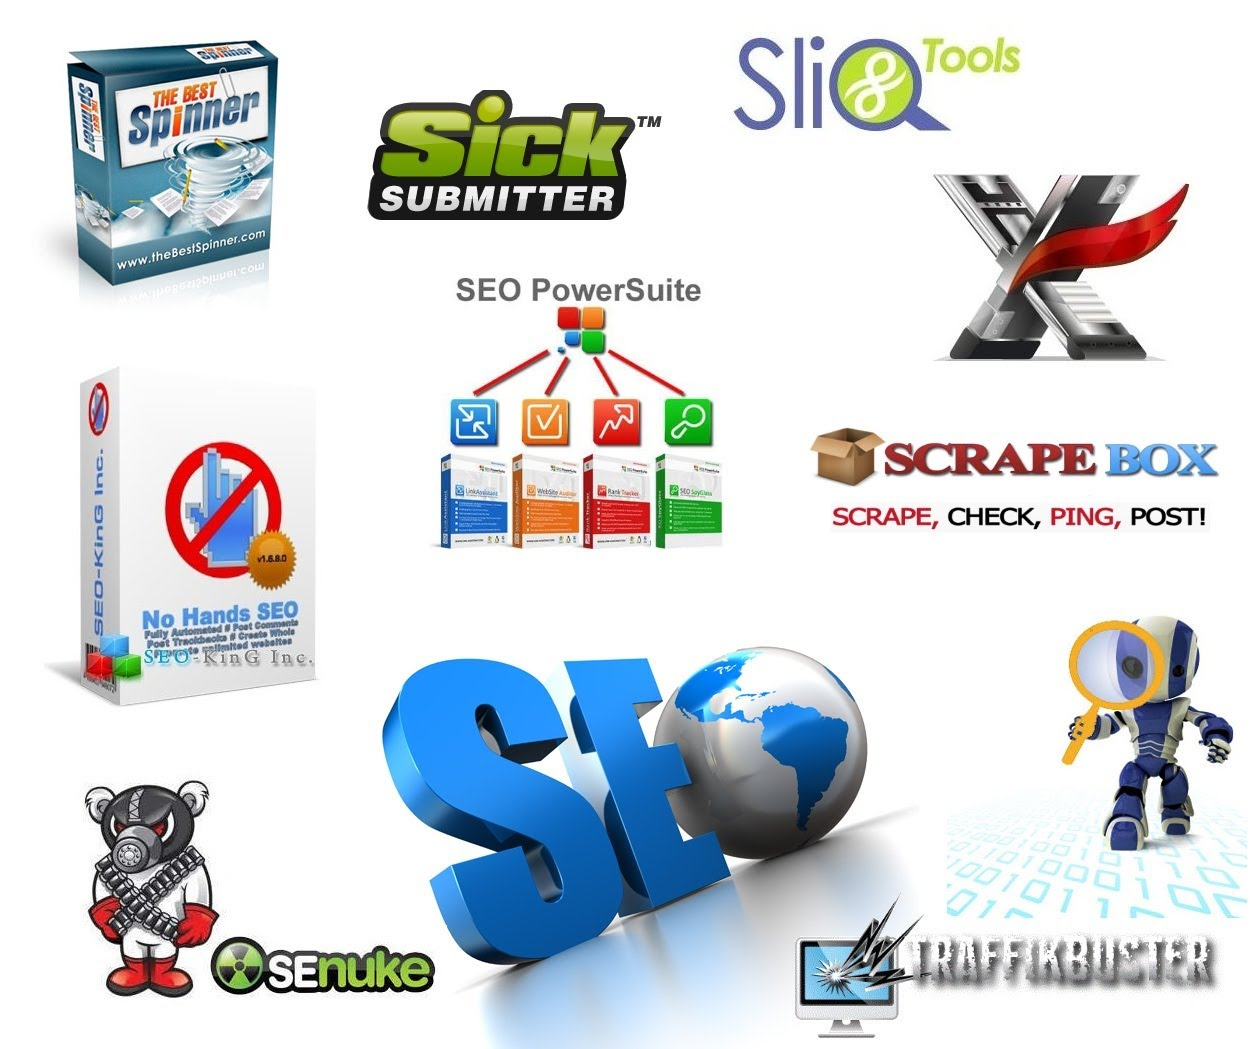 SEO megapackage tools include 333 tools for $10